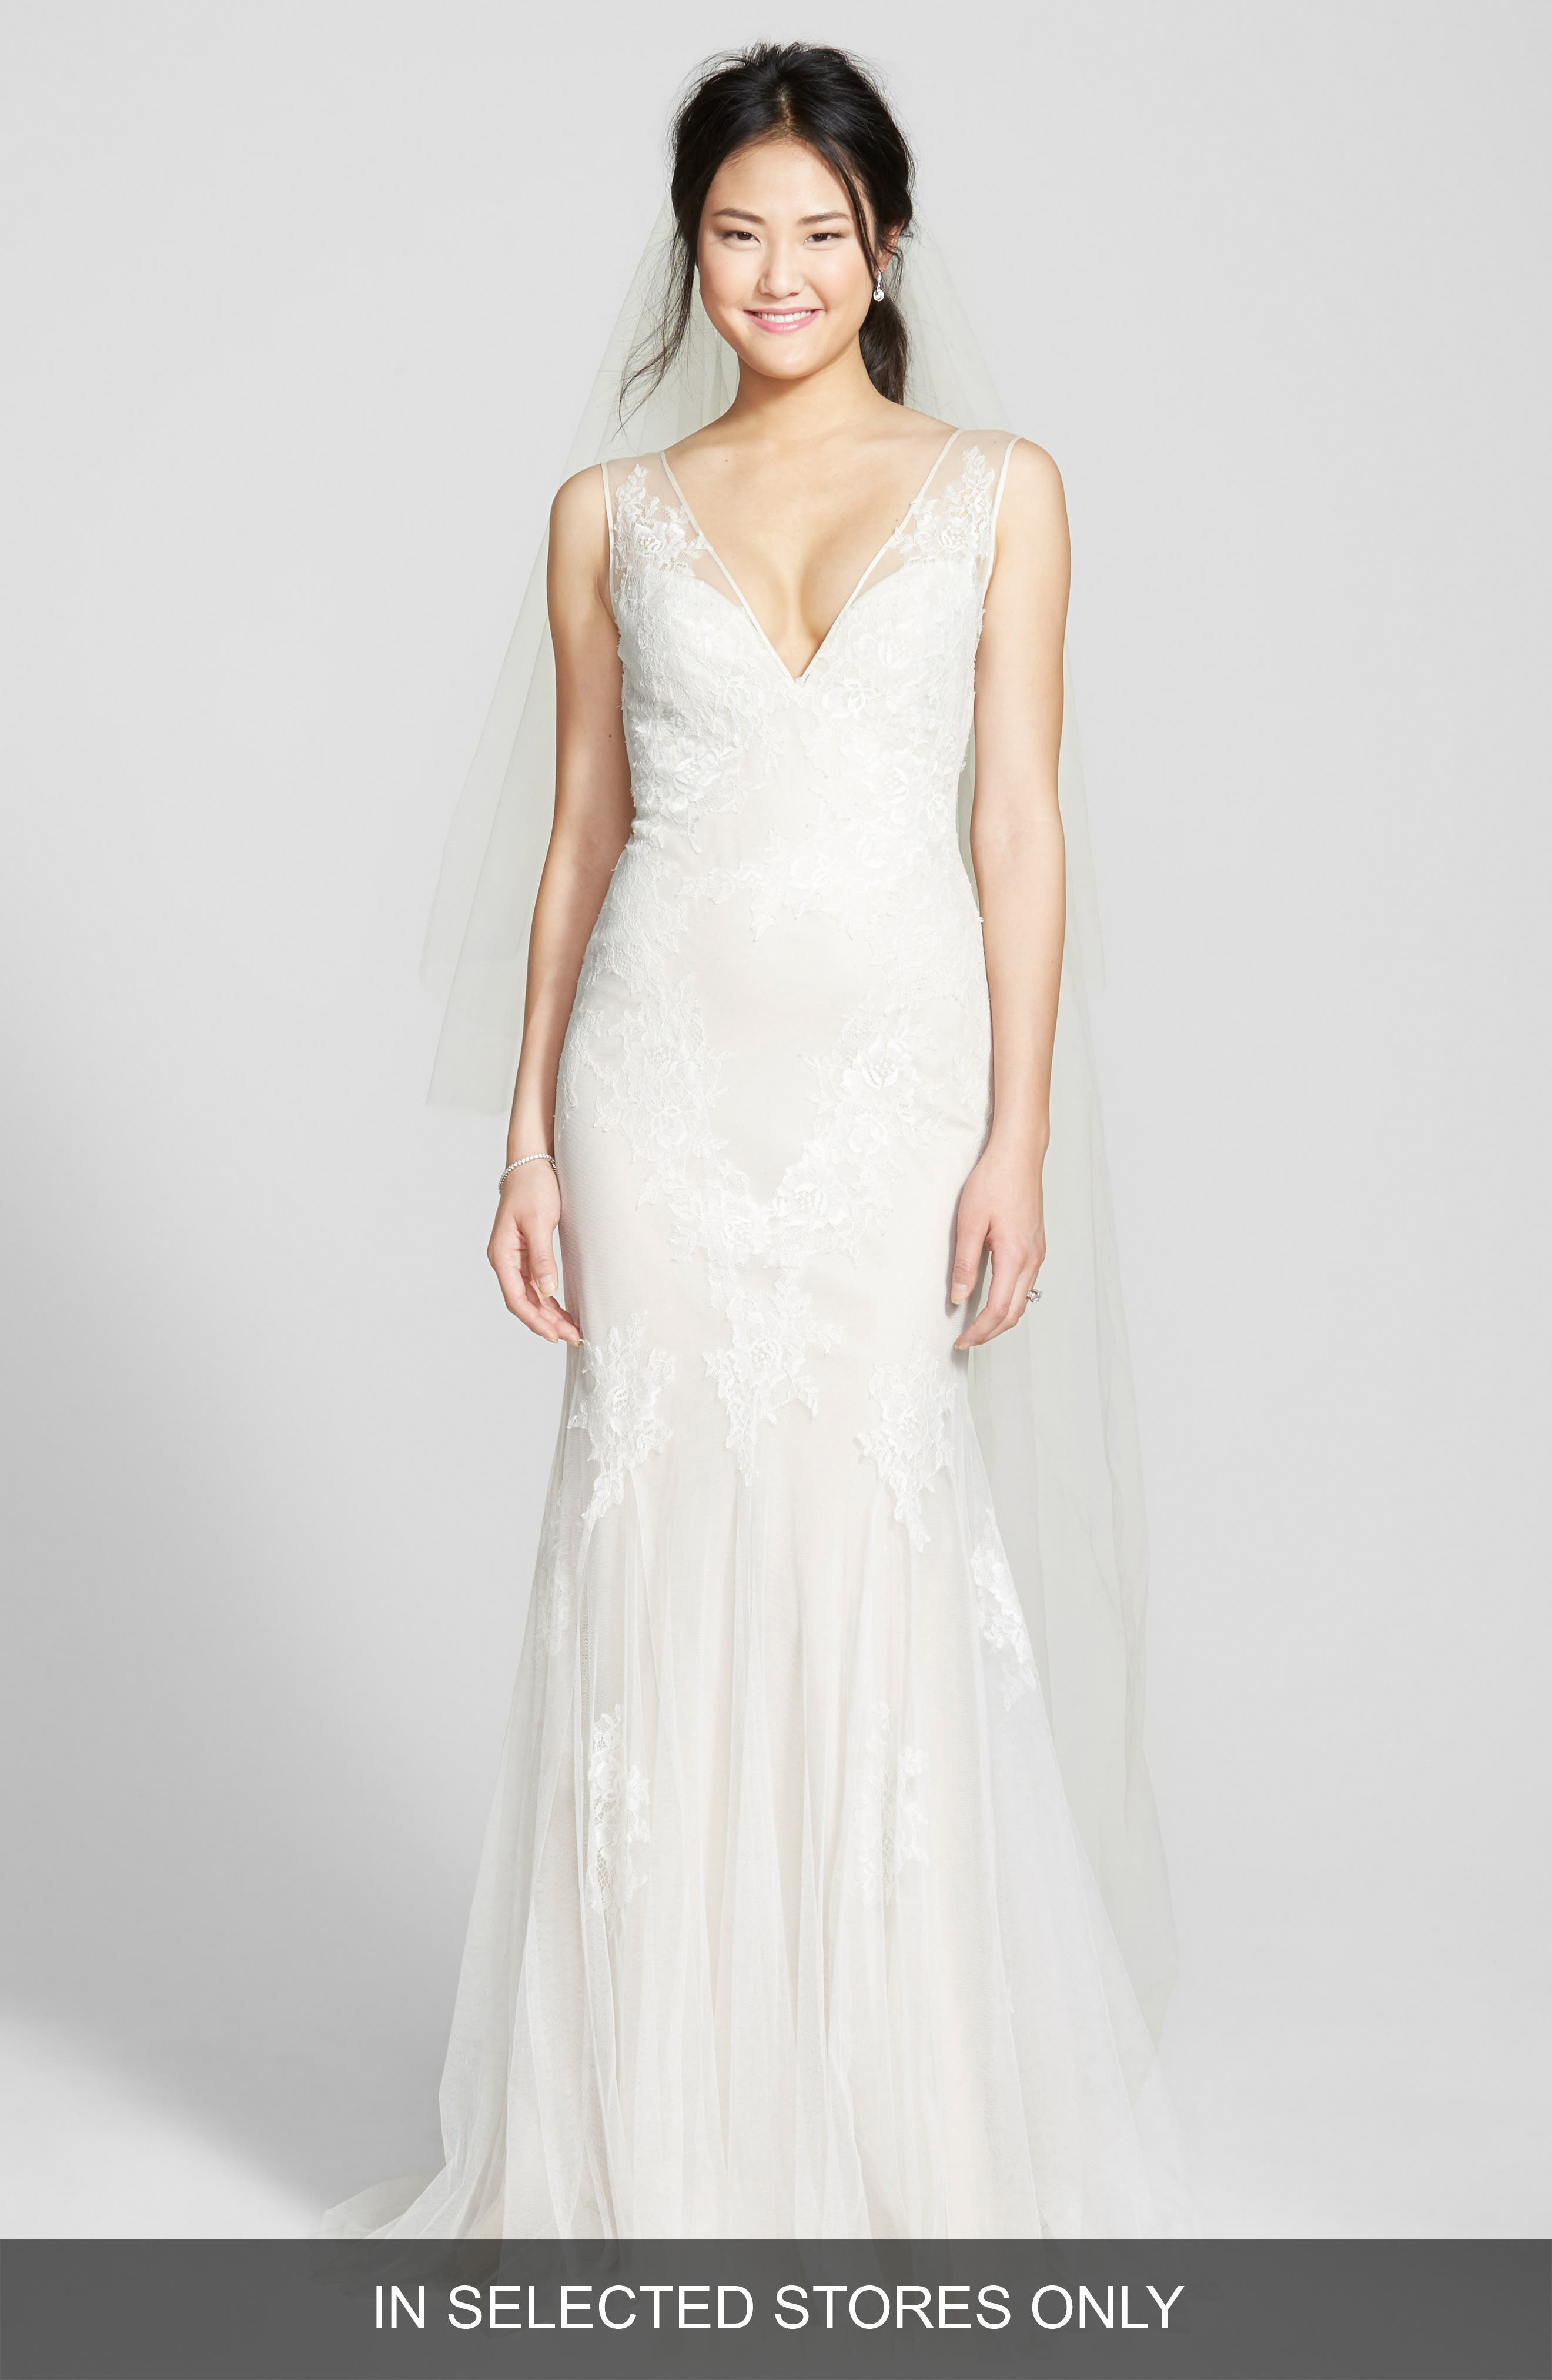 BLISS Monique Lhuillier Chantilly Lace & Tulle Gown